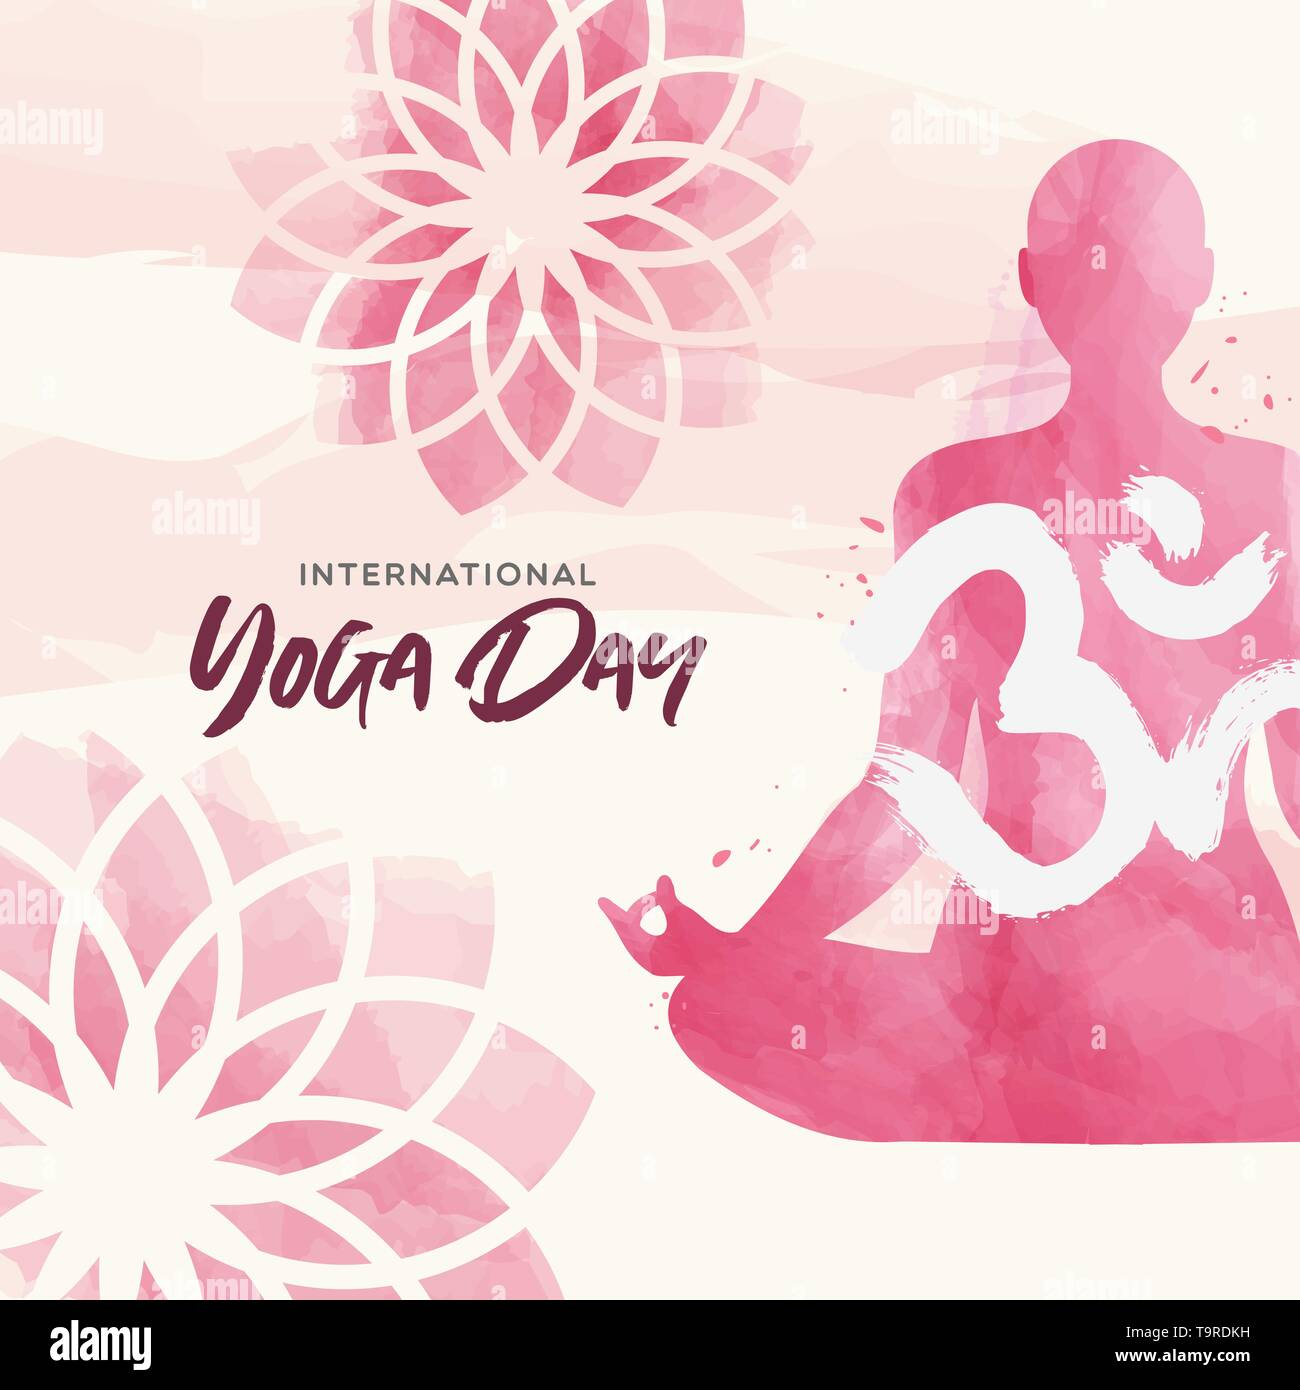 International Yoga Day greeting card illustration. Pink watercolor art of woman doing lotus pose exercise and floral background. - Stock Vector